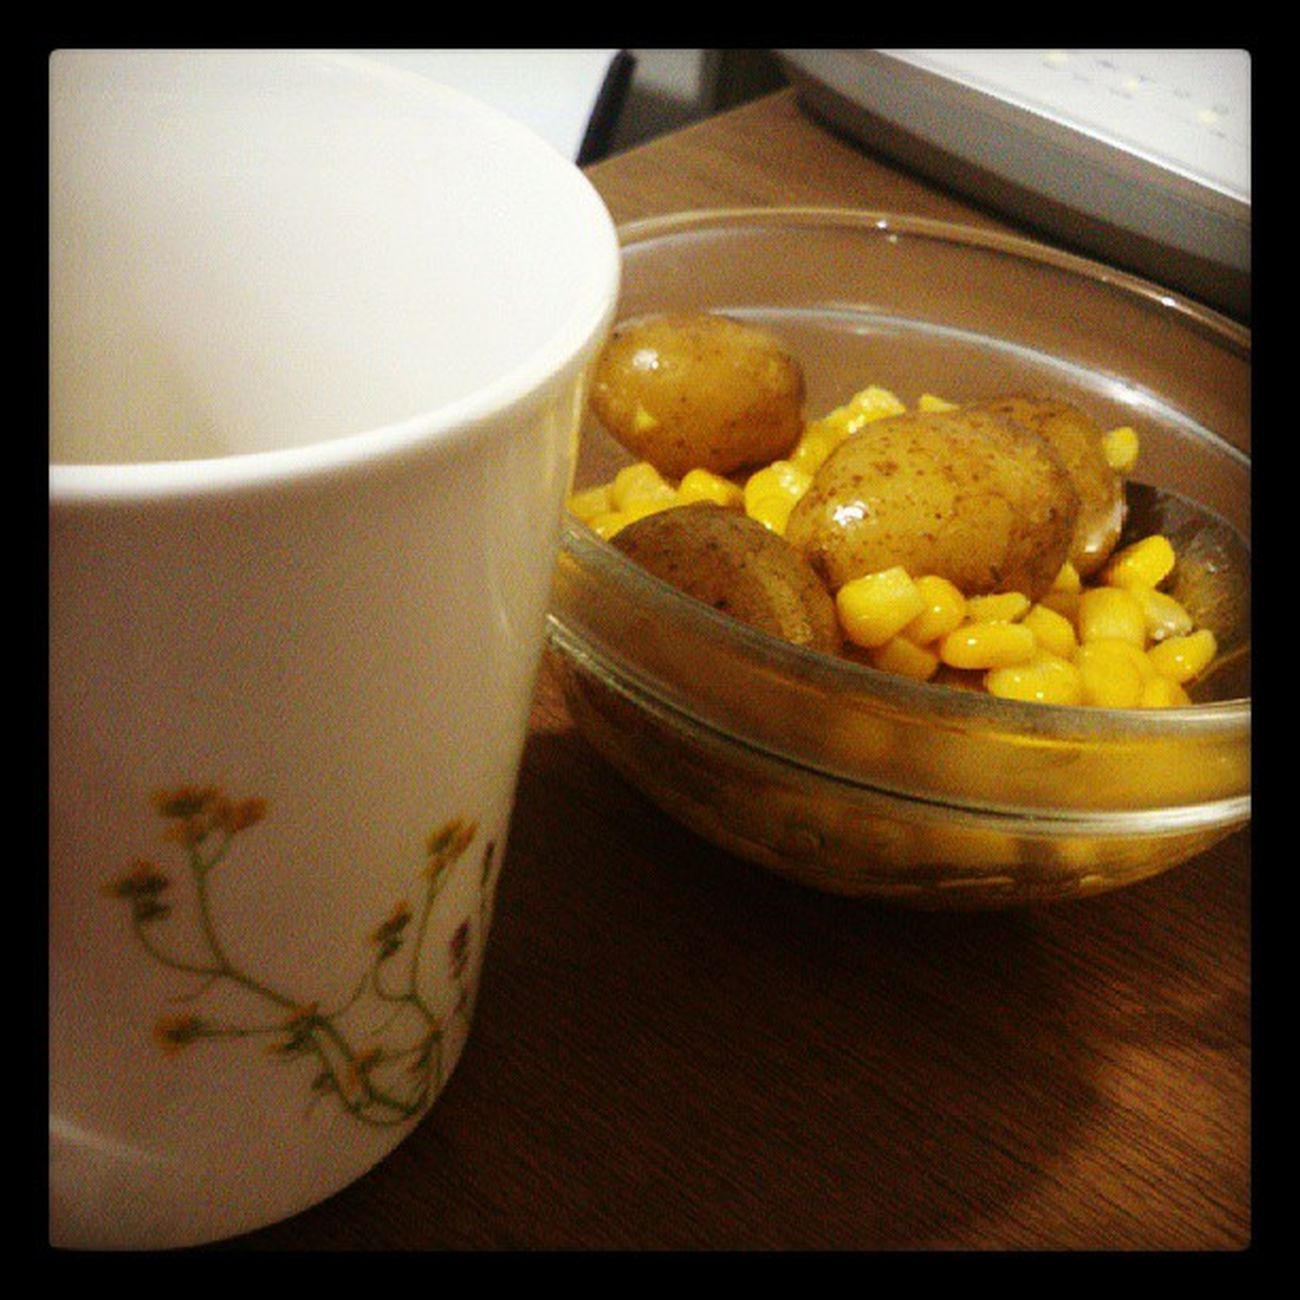 Some baby potatoes + corn kernel + green tea Latedinner Earlylunch Tummyscryin Pretentiousdietmode